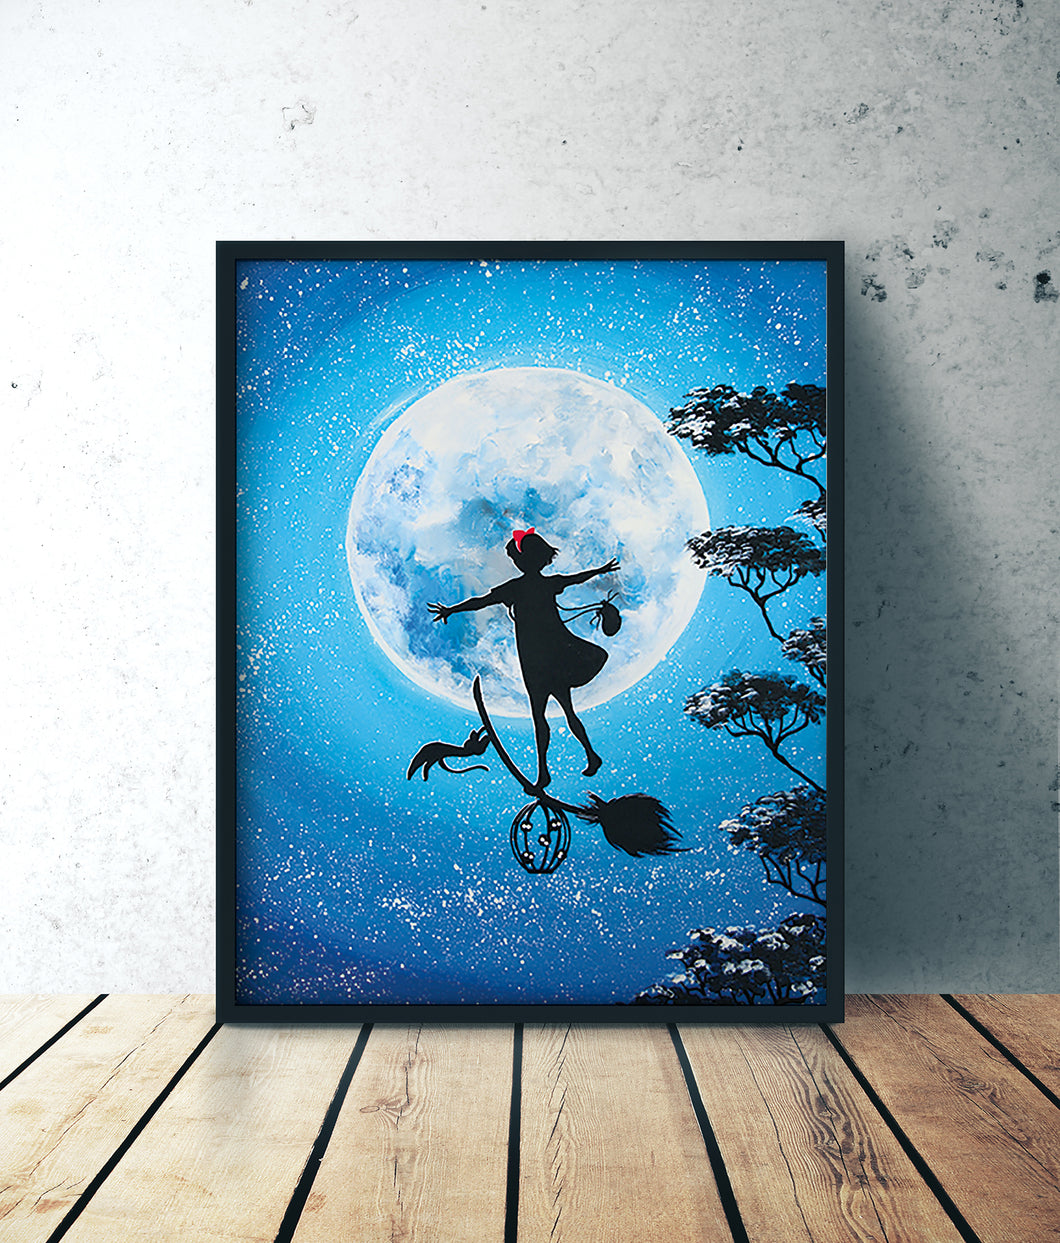 Kiki the witch ghibli acrylic forex by Kudnalla